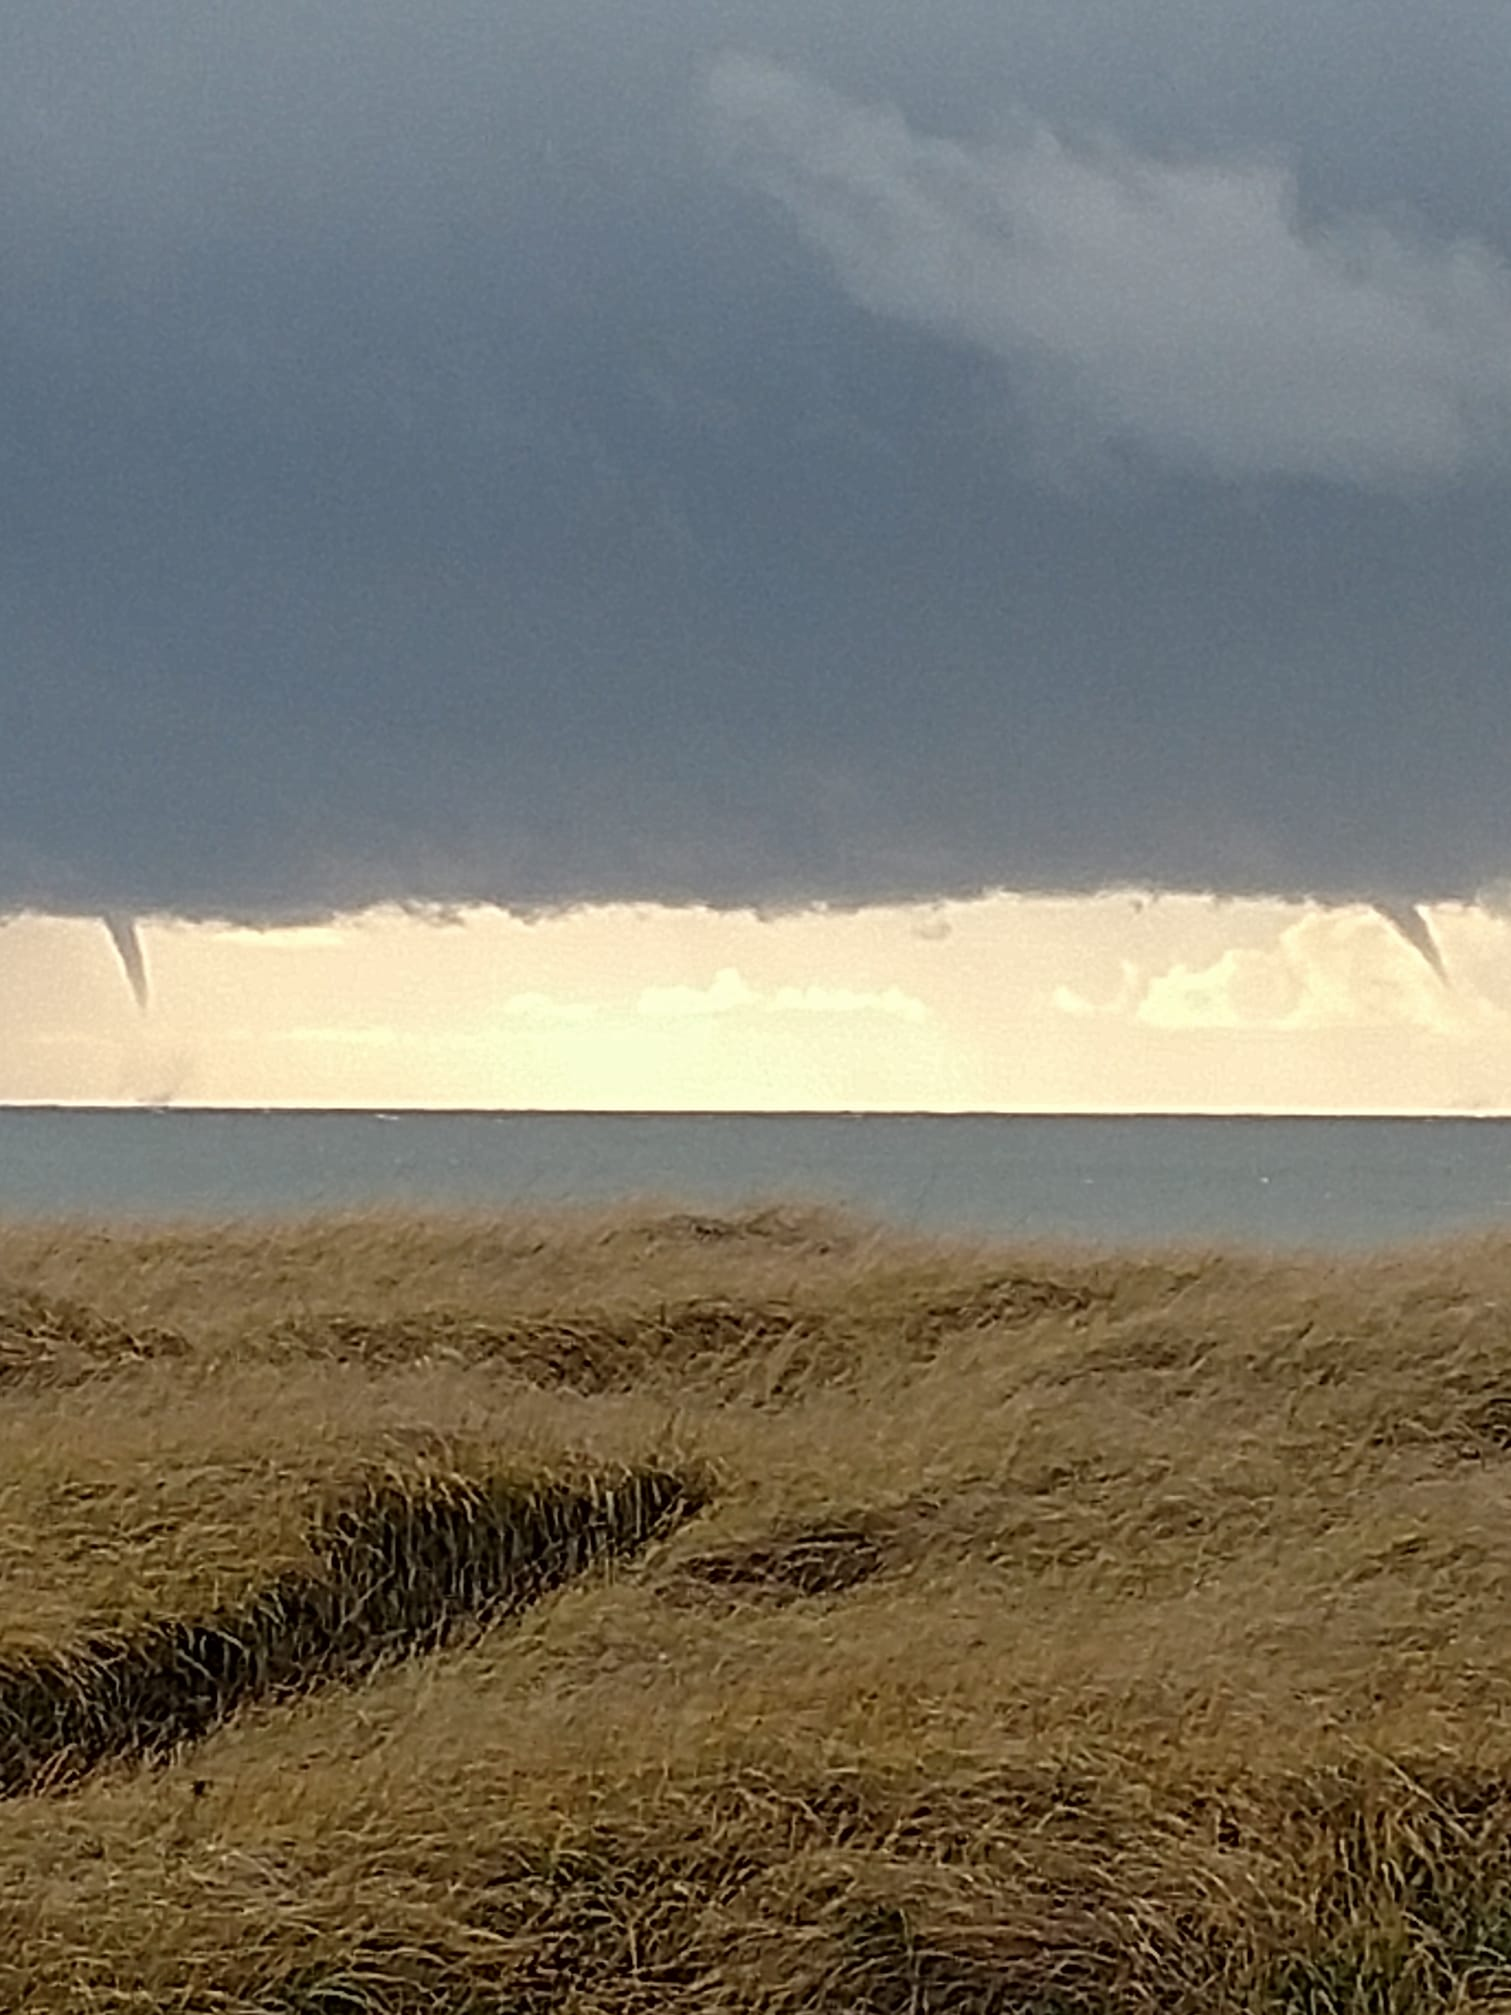 Two waterspouts were spoted off Ocean Shores on Thursday afternoon. (Photo: Debbie Starkey Ferguson)<p></p>